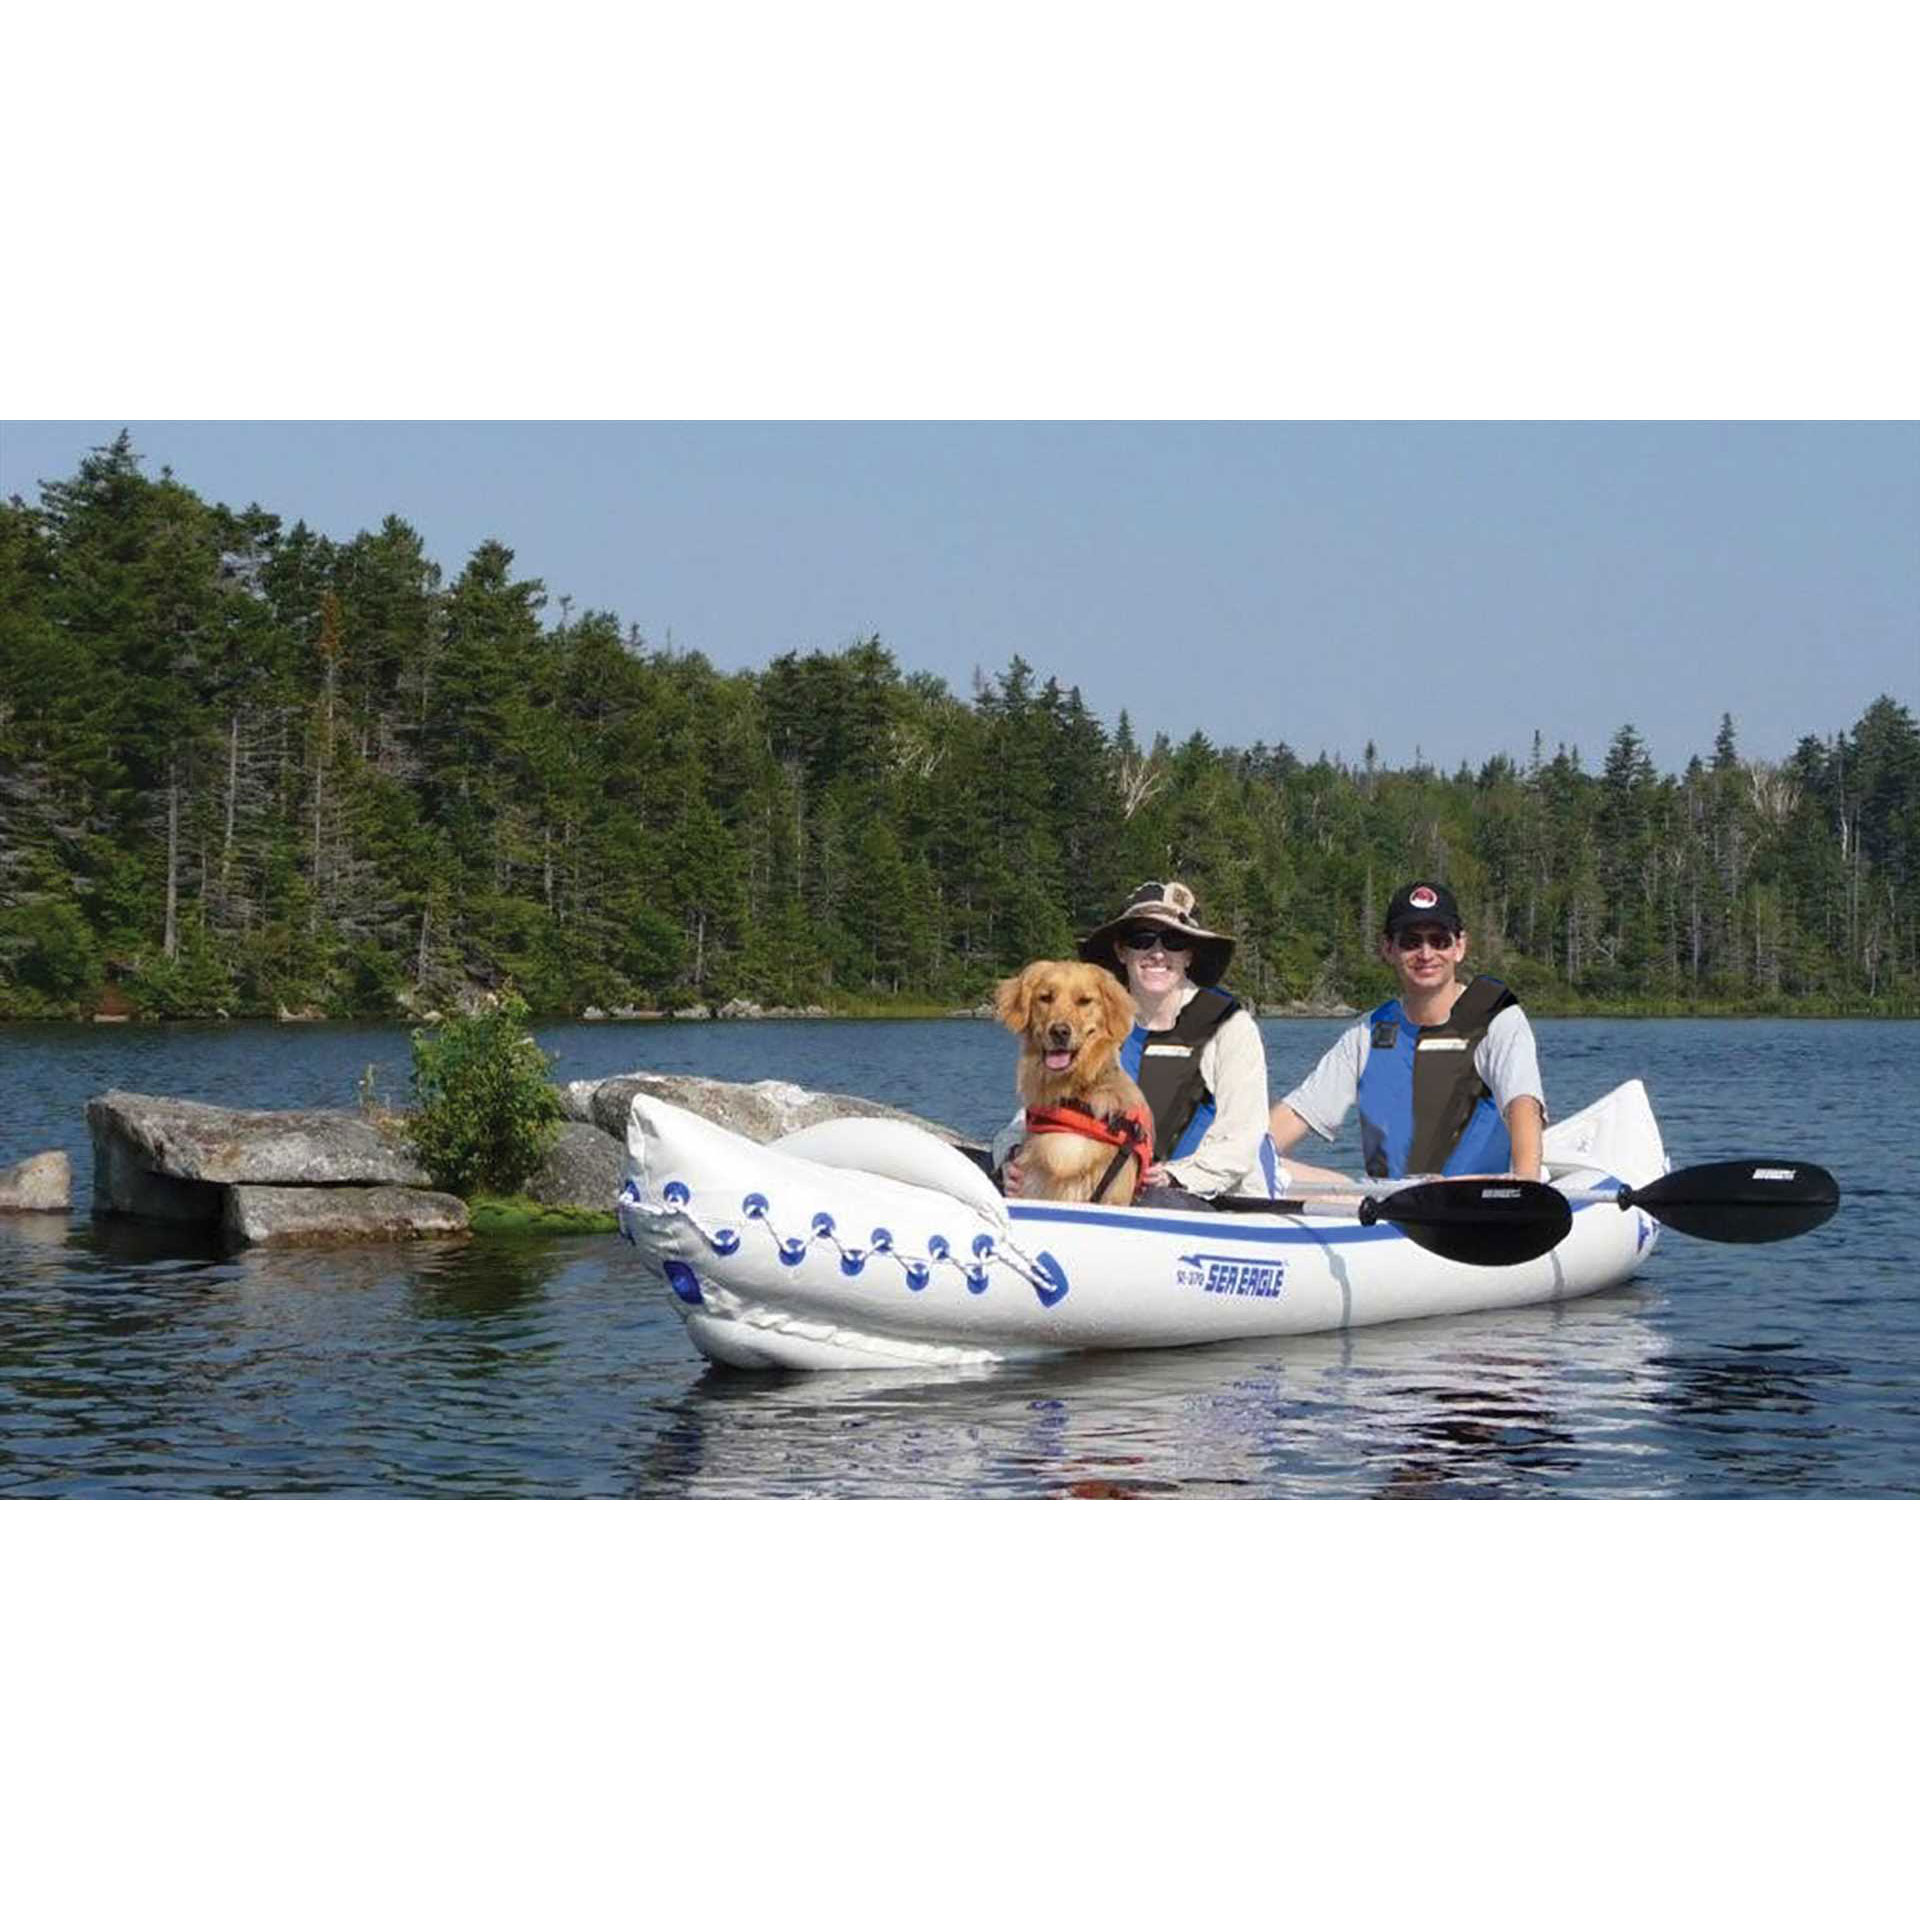 Sea eagle 370 pro 3 person blow up inflatable kayak for 4 person fishing boat